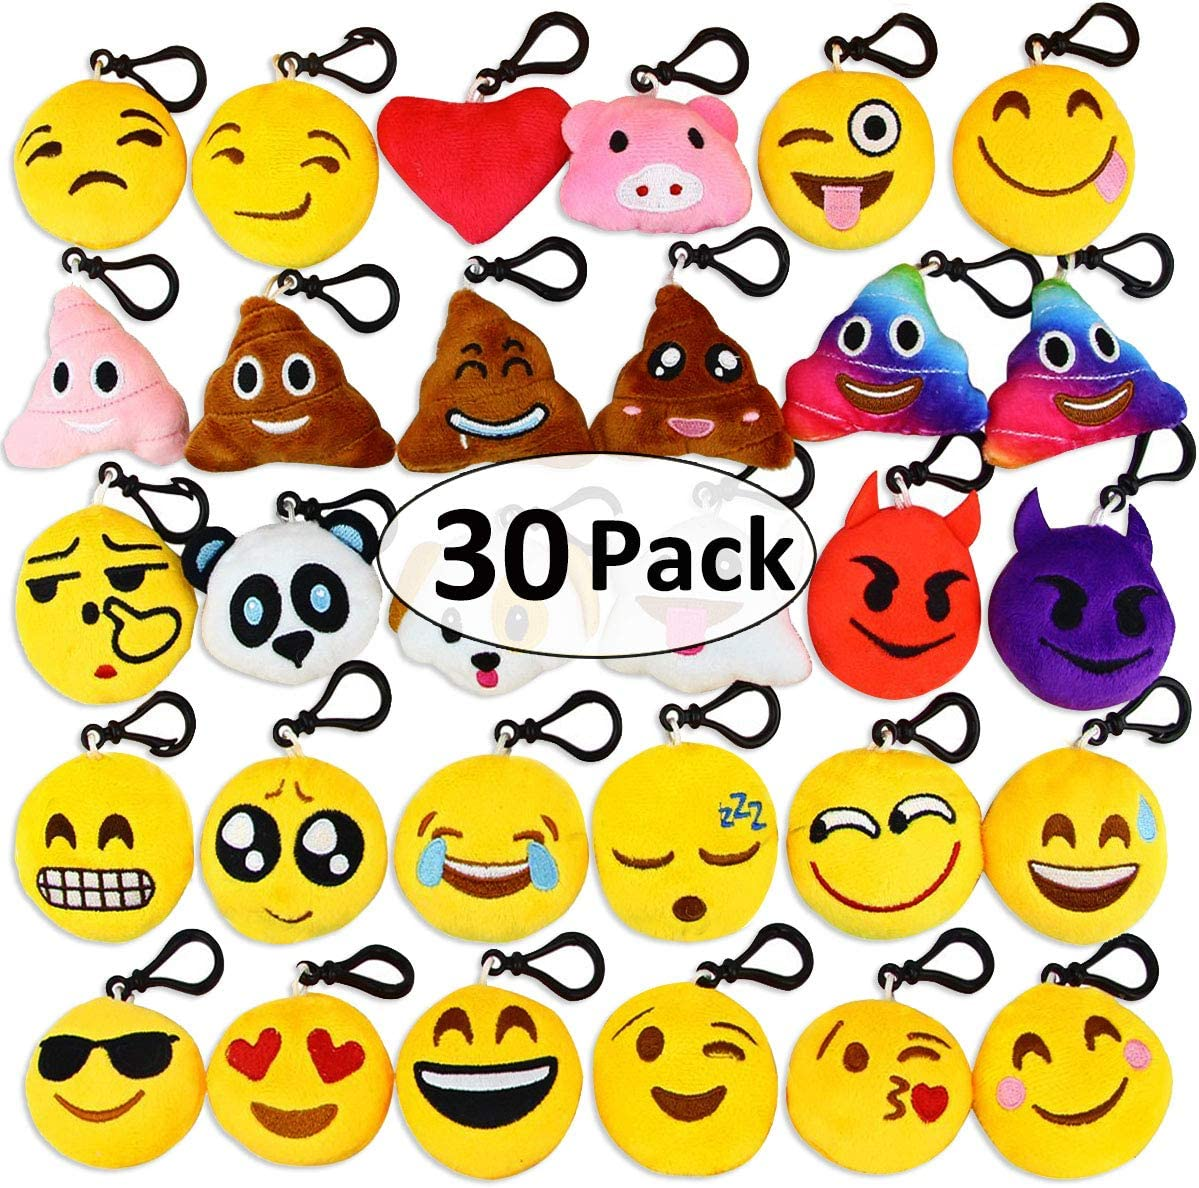 Aitey Emotion Keychain for Kids, Emotion Plush Party Decorations, Birthday Theme Party Favor for Kids Bulk Toys for Valentine Carnival Prizes, Set of 30